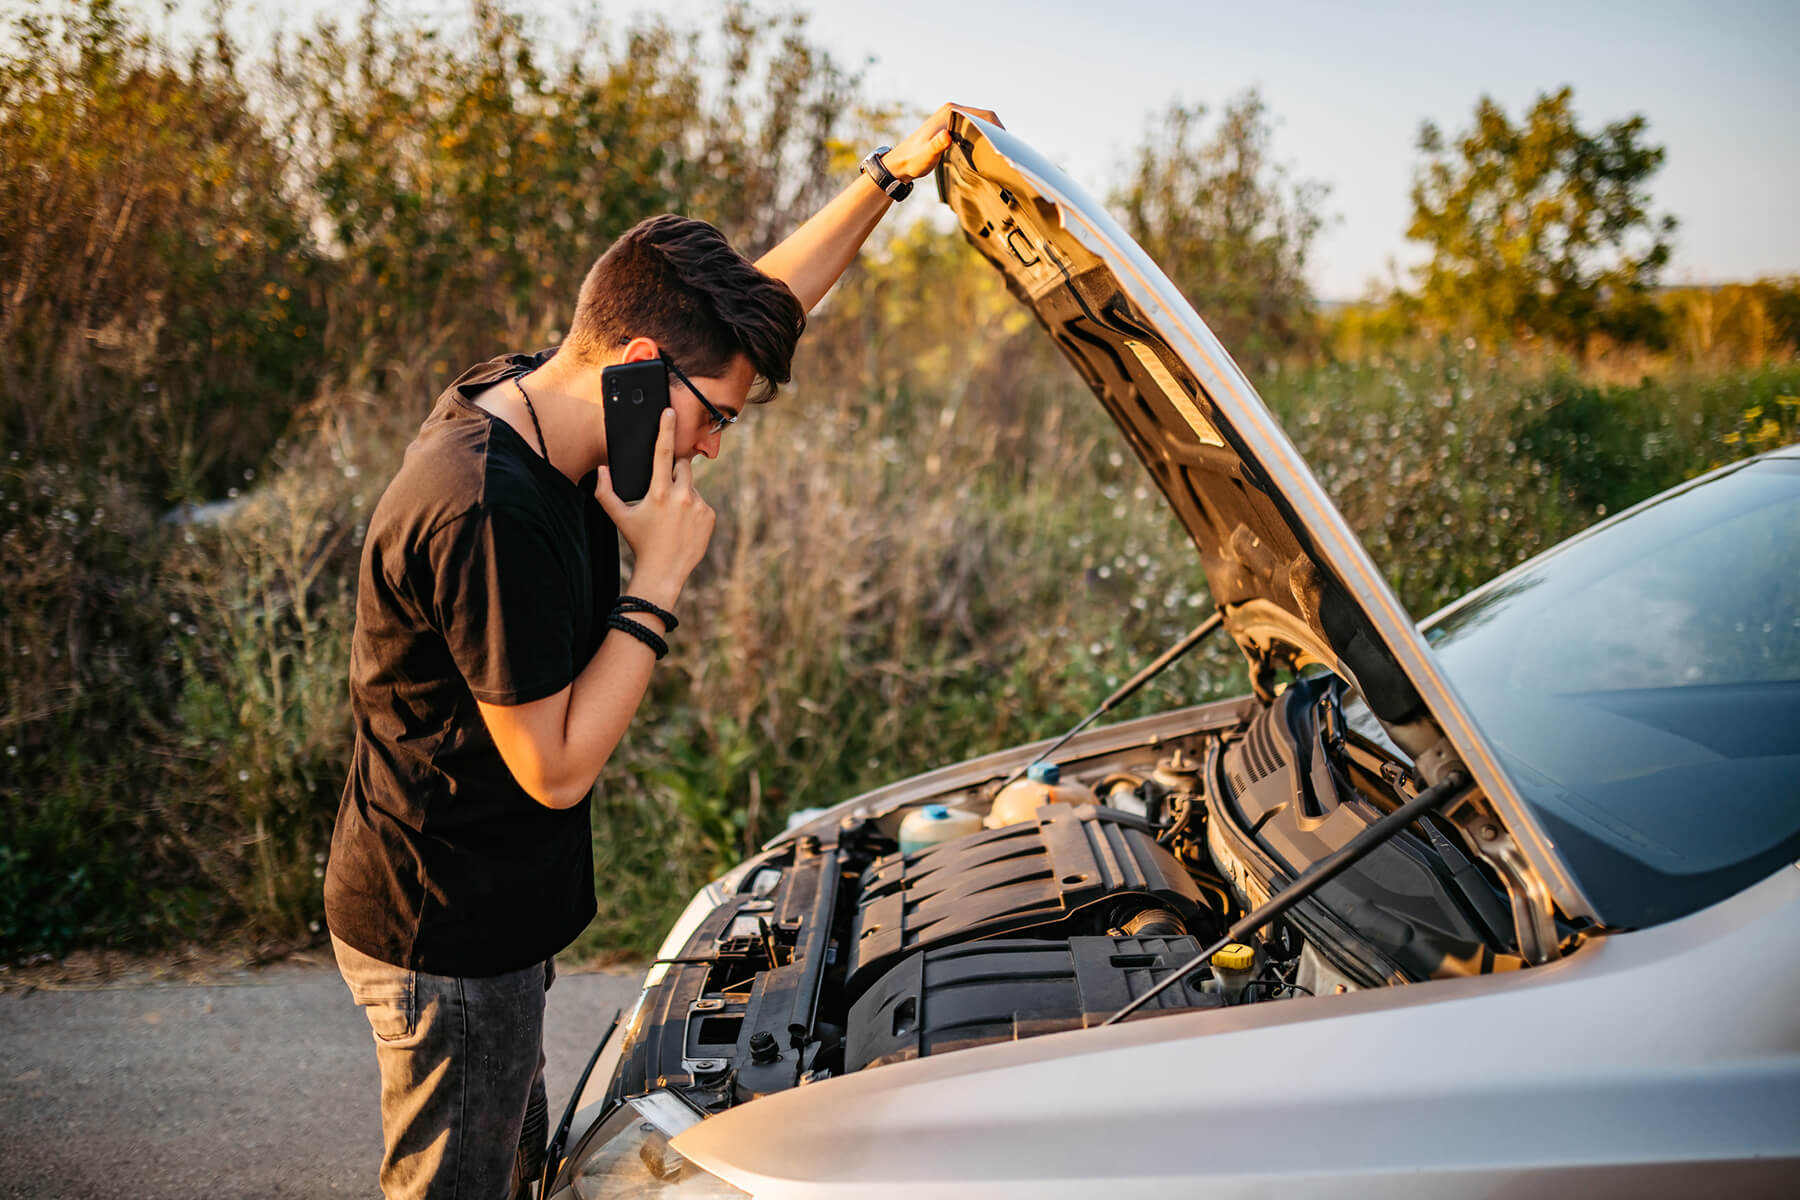 A young man looks under the hood of his car while making a call on his cellphone